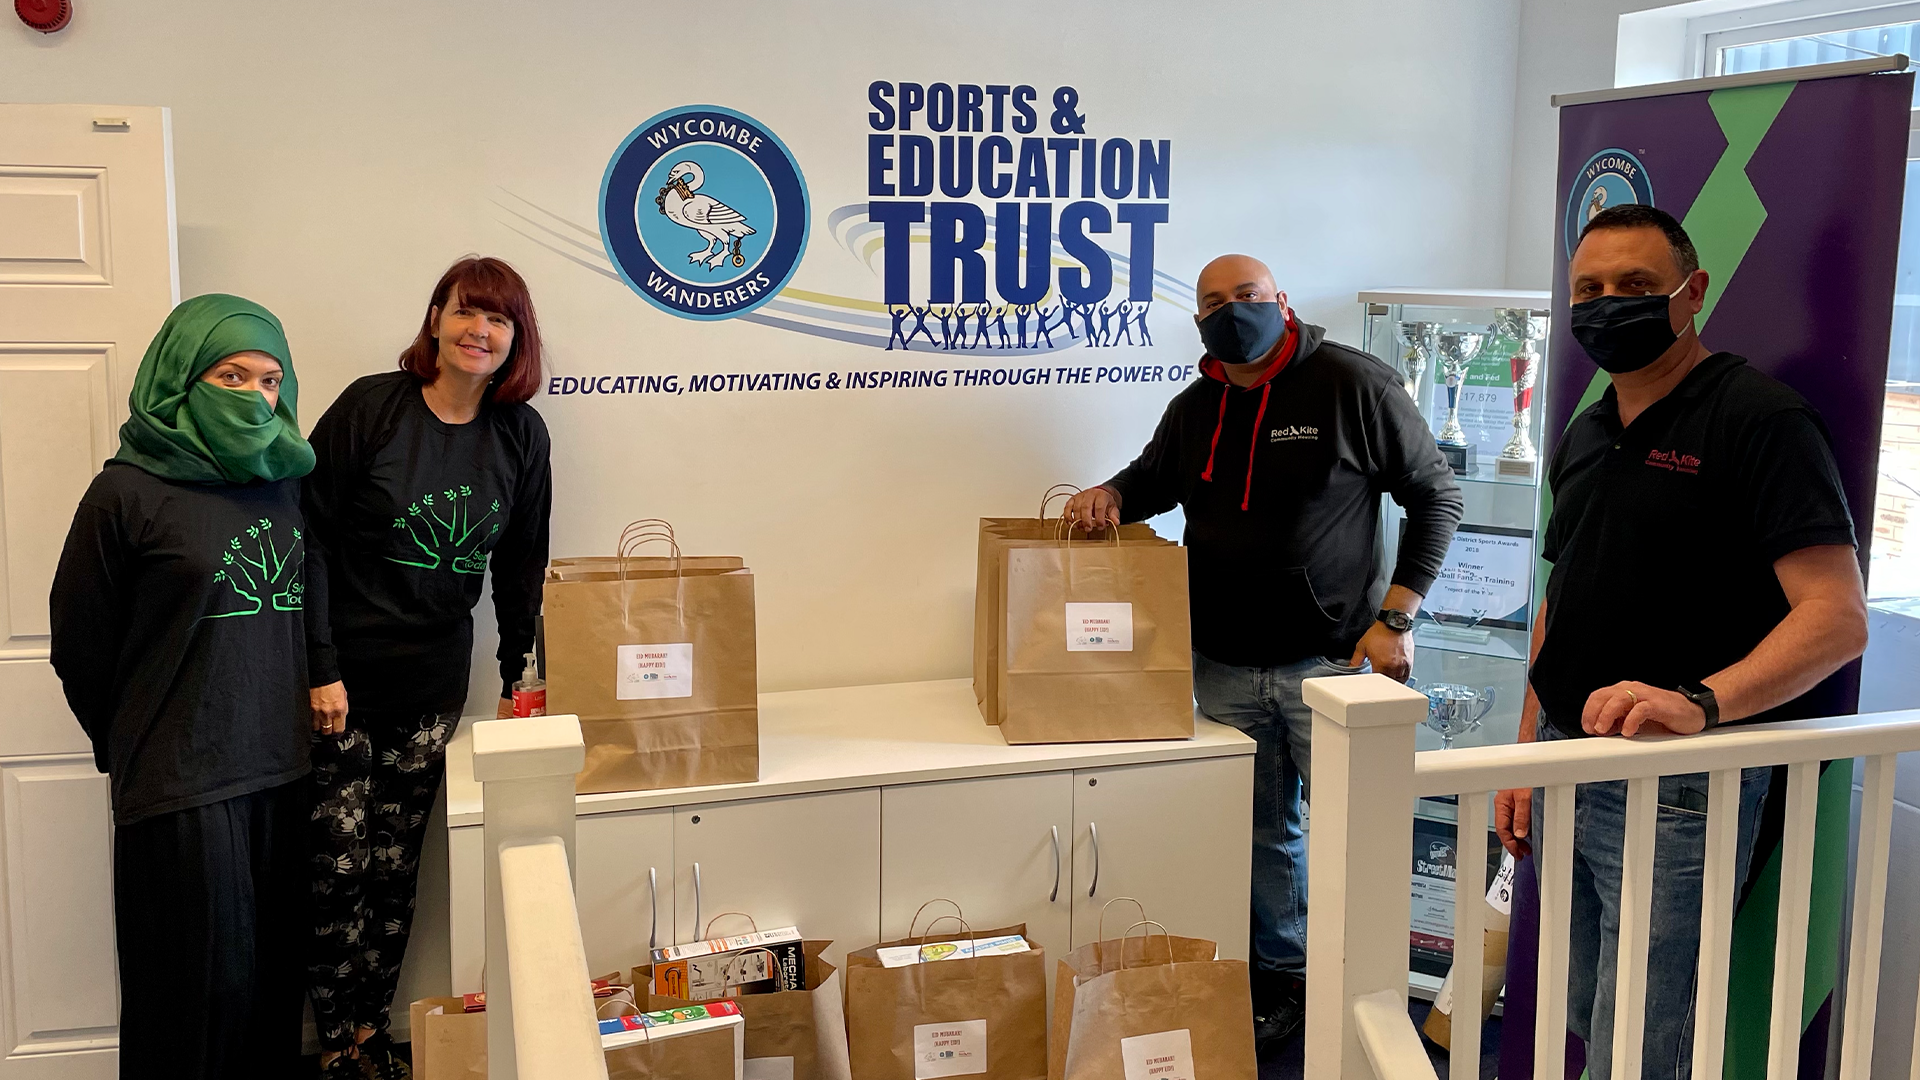 Wycombe Wanderers Sports & Education Trust Partner with Seerah Today During Ramadan